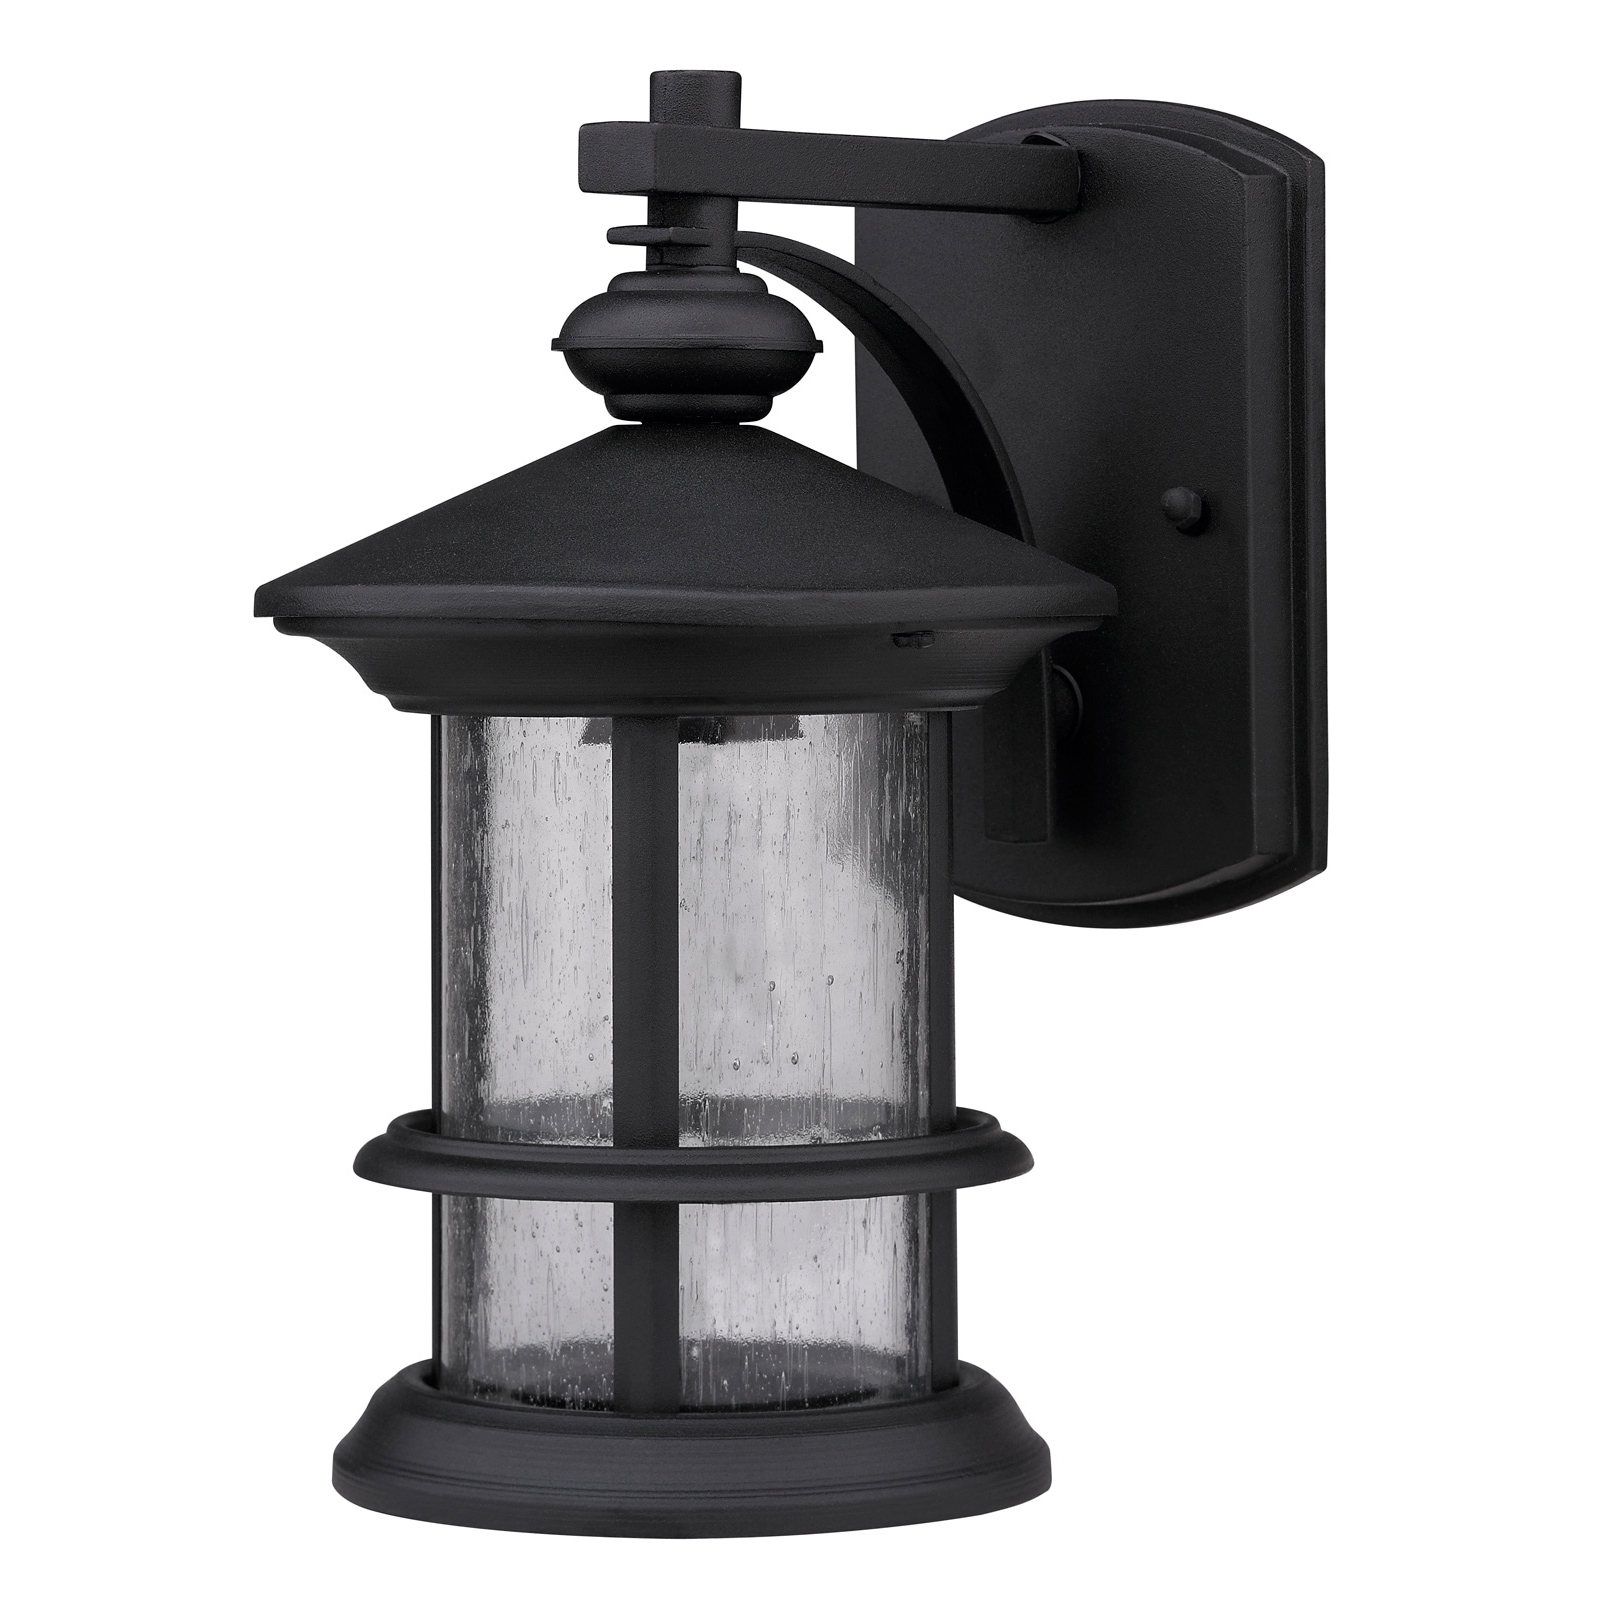 Newest Transitional Black One Light Weatherproof Outdoor Wall Fixture Pertaining To Transitional Outdoor Wall Lighting (Gallery 3 of 20)